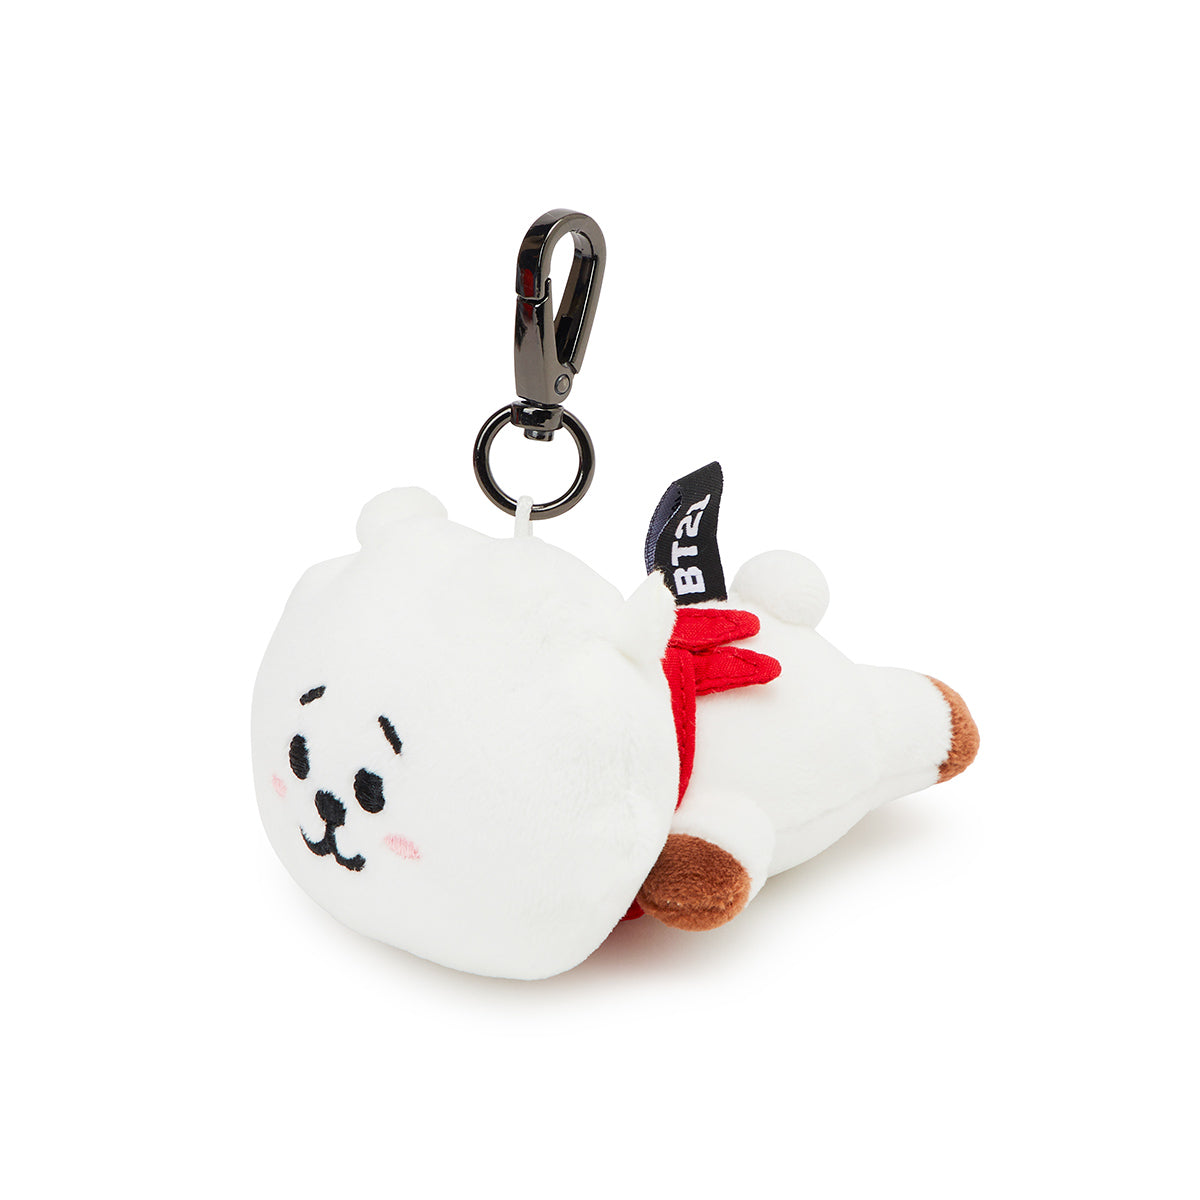 BT21 RJ Soft Plush lying Bag Charm